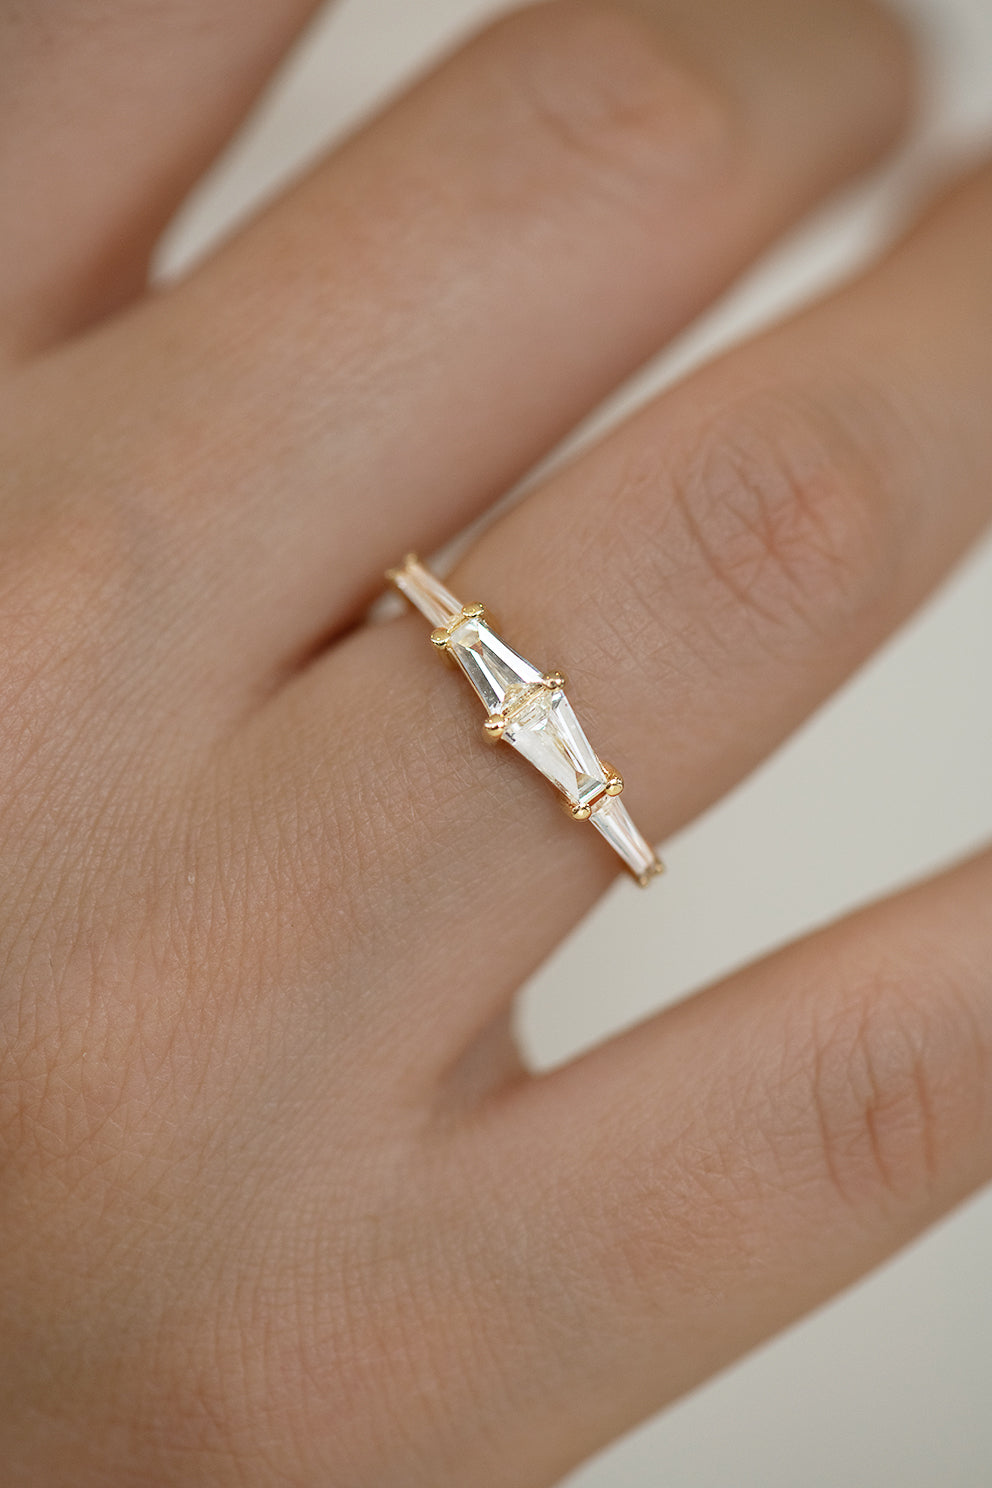 Tapered Baguette Engagement Ring Up Close View on Finger